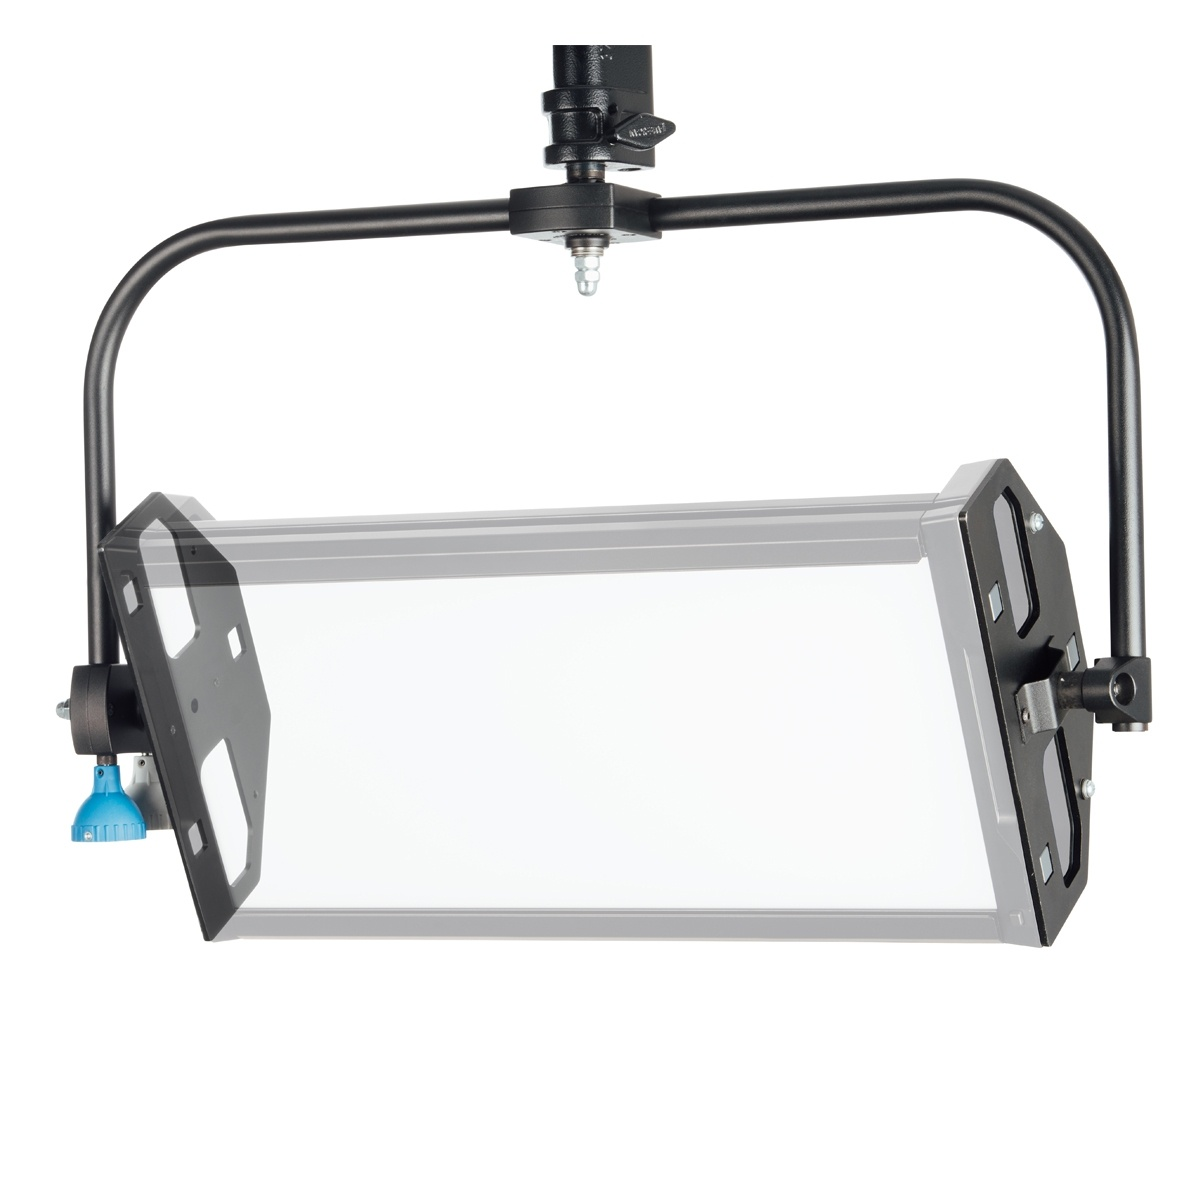 Litepanels Gemini Pole Operated Yoke